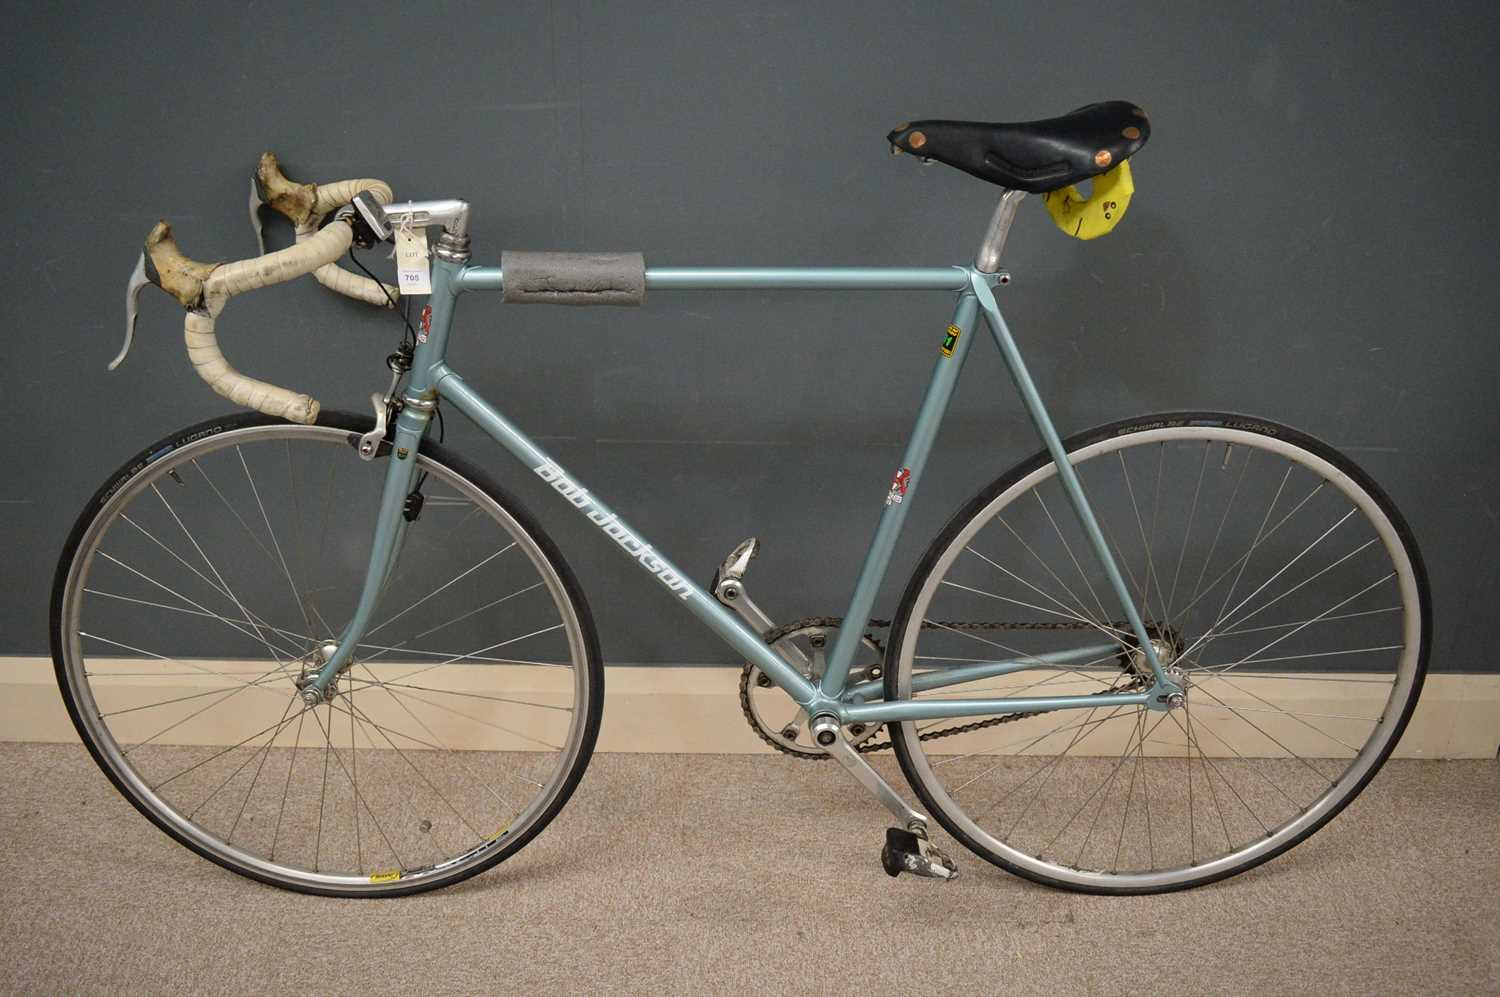 Lot 705 - A single-speed bicycle by Bob Jackson.